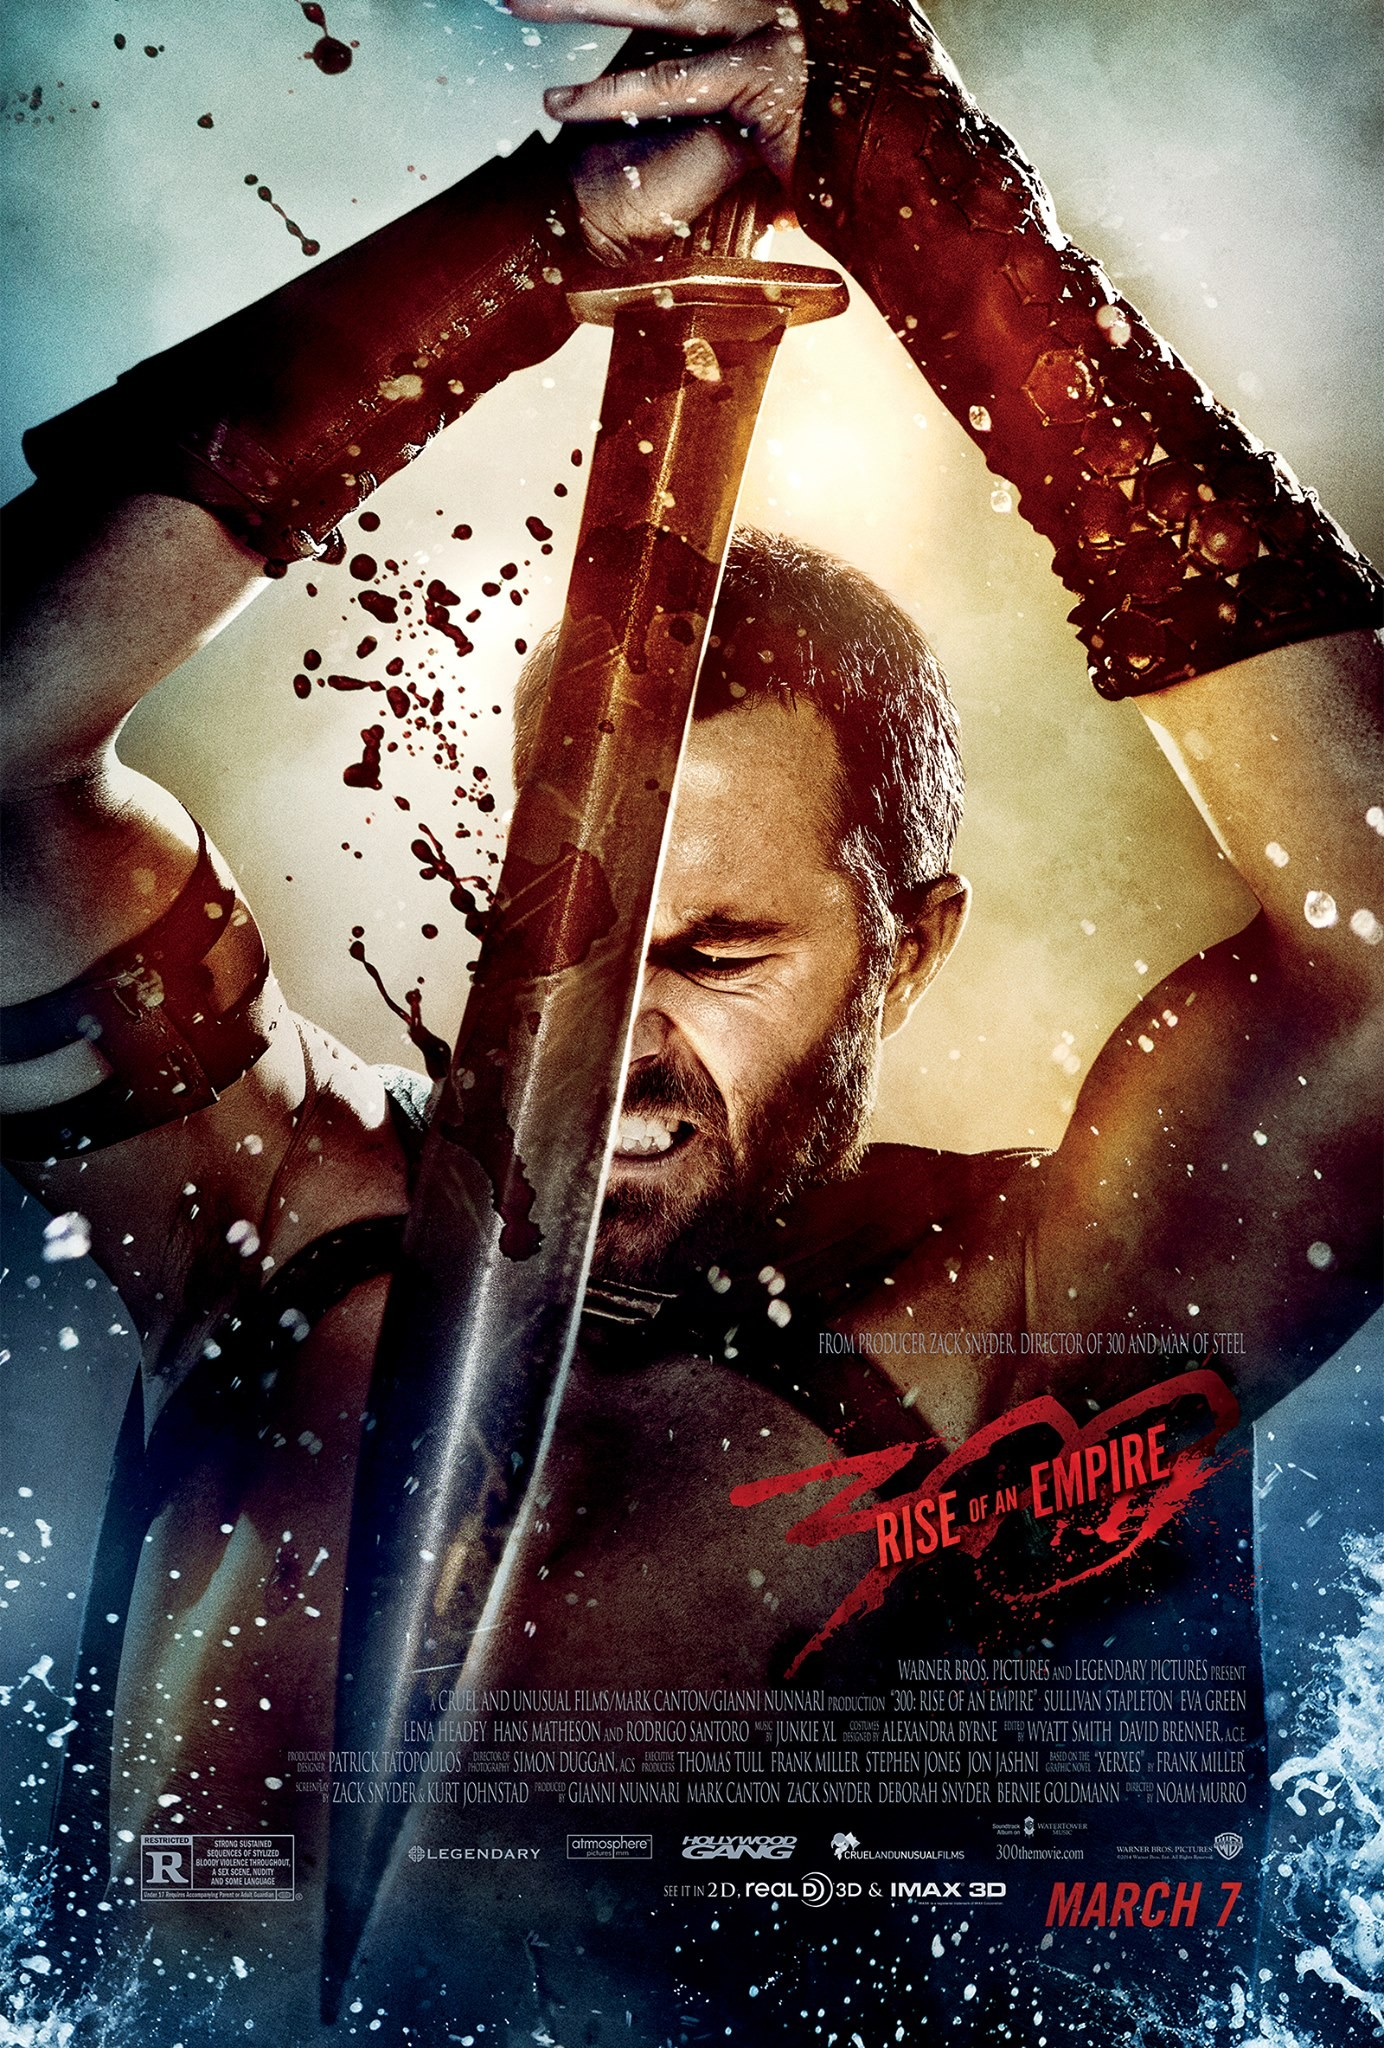 300 Rise of an Empire-Official Poster Banner PROMO CHAR XXLG-20JANEIRO2014-01